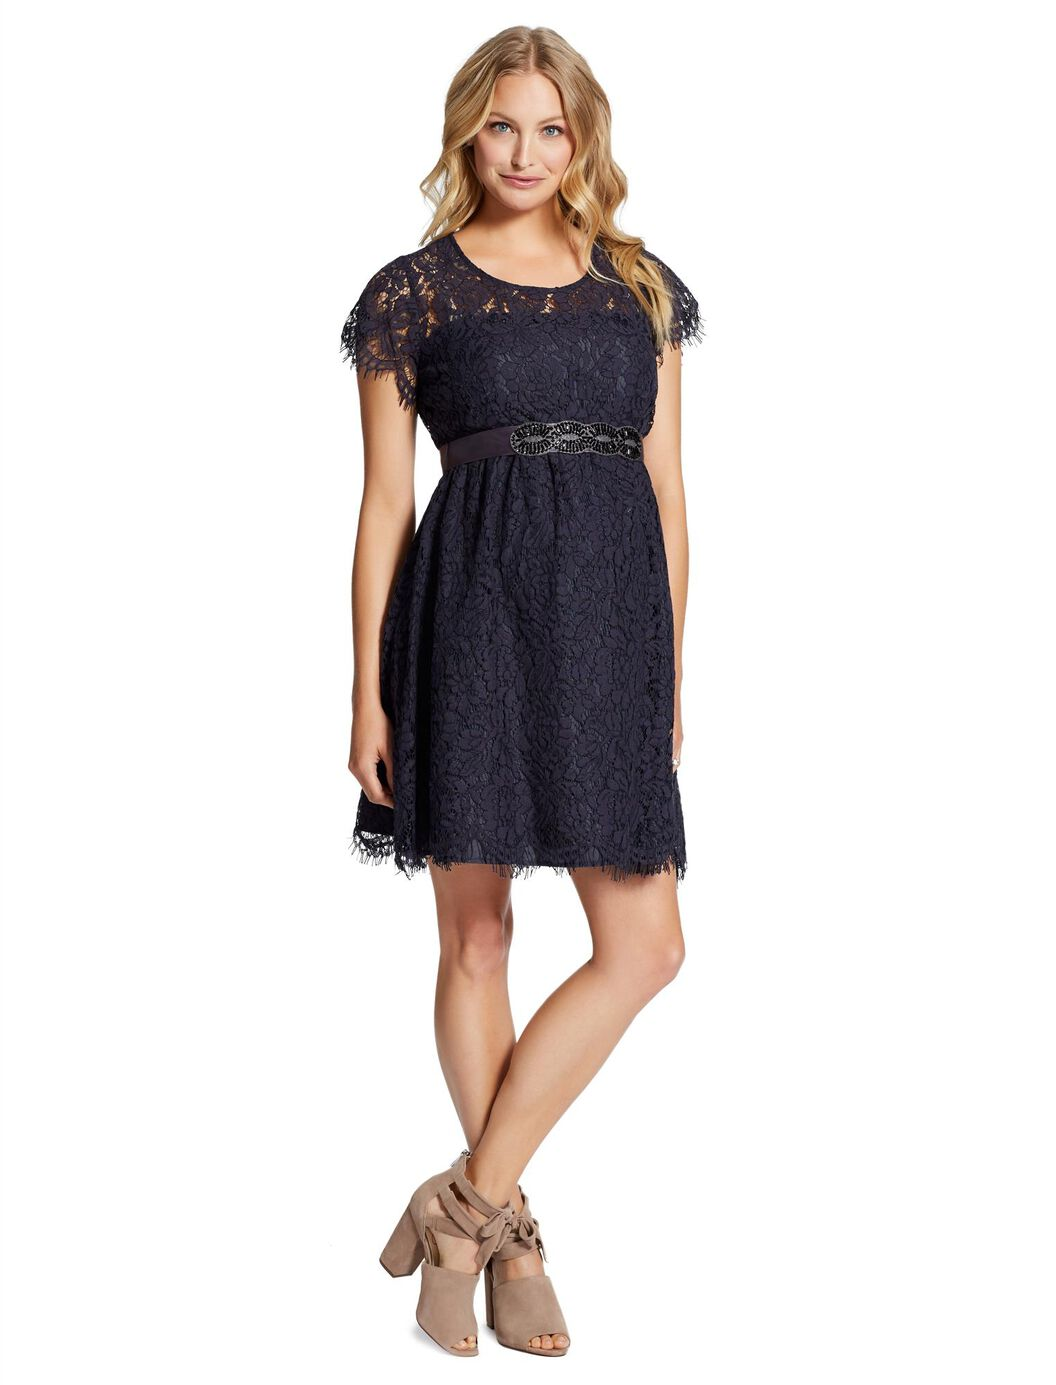 Jessica simpson belted maternity dress motherhood maternity jessica simpson belted maternity dress navy ombrellifo Gallery